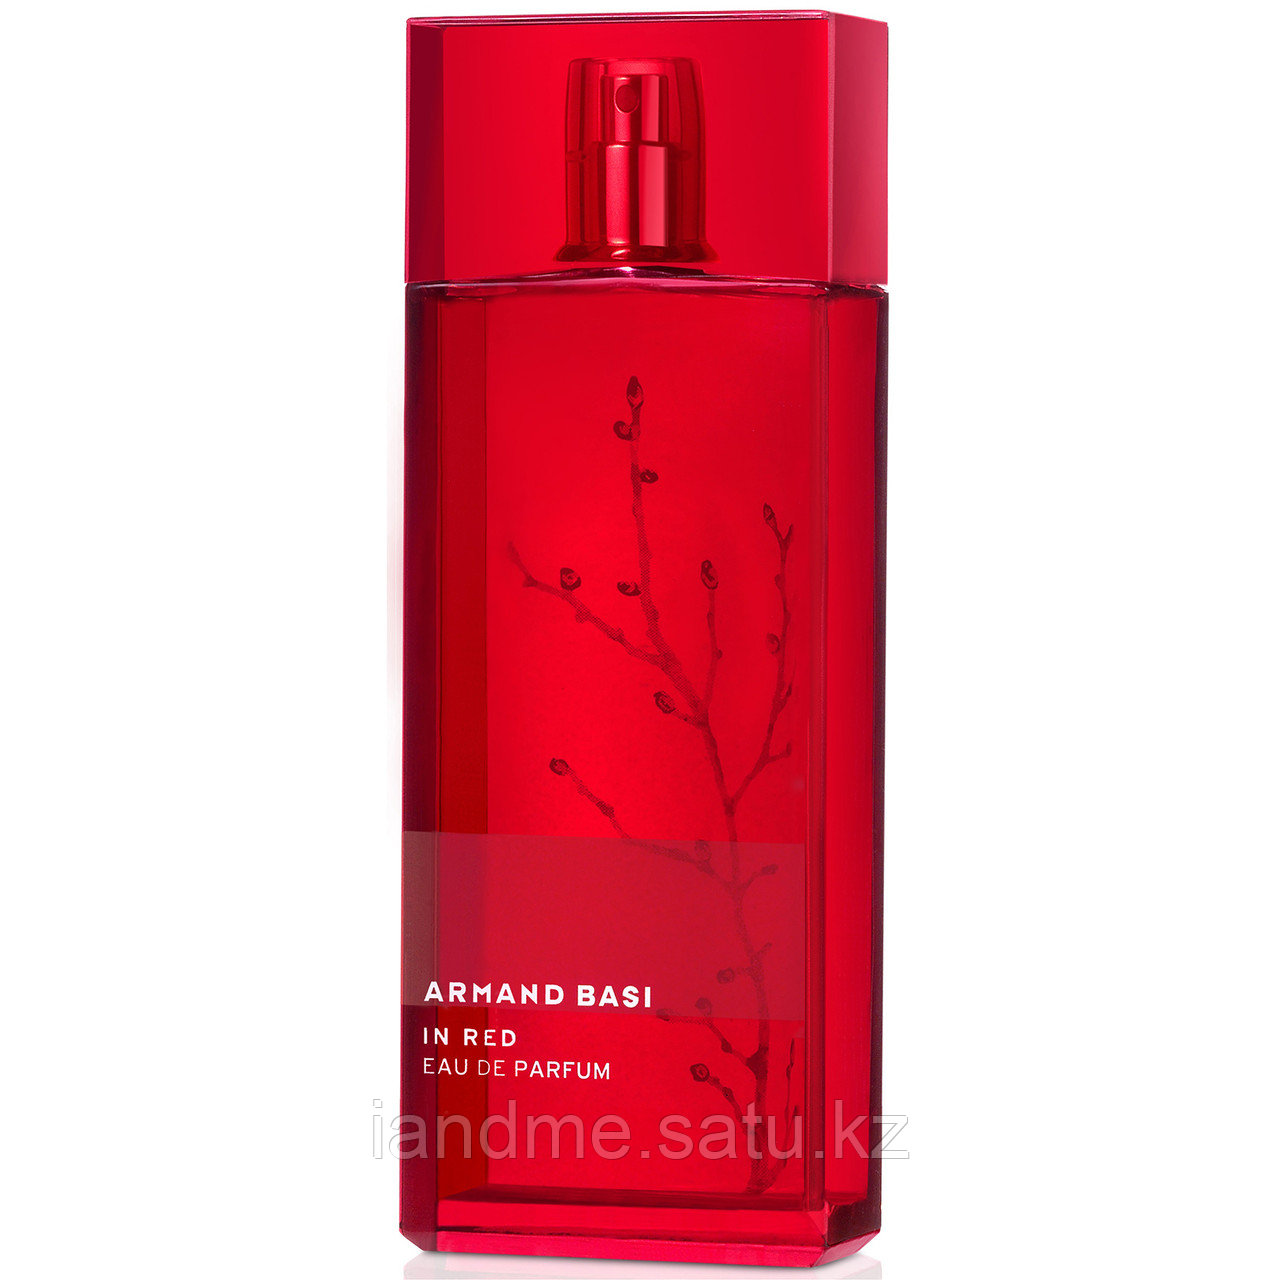 Armand basi in red edp жен 100